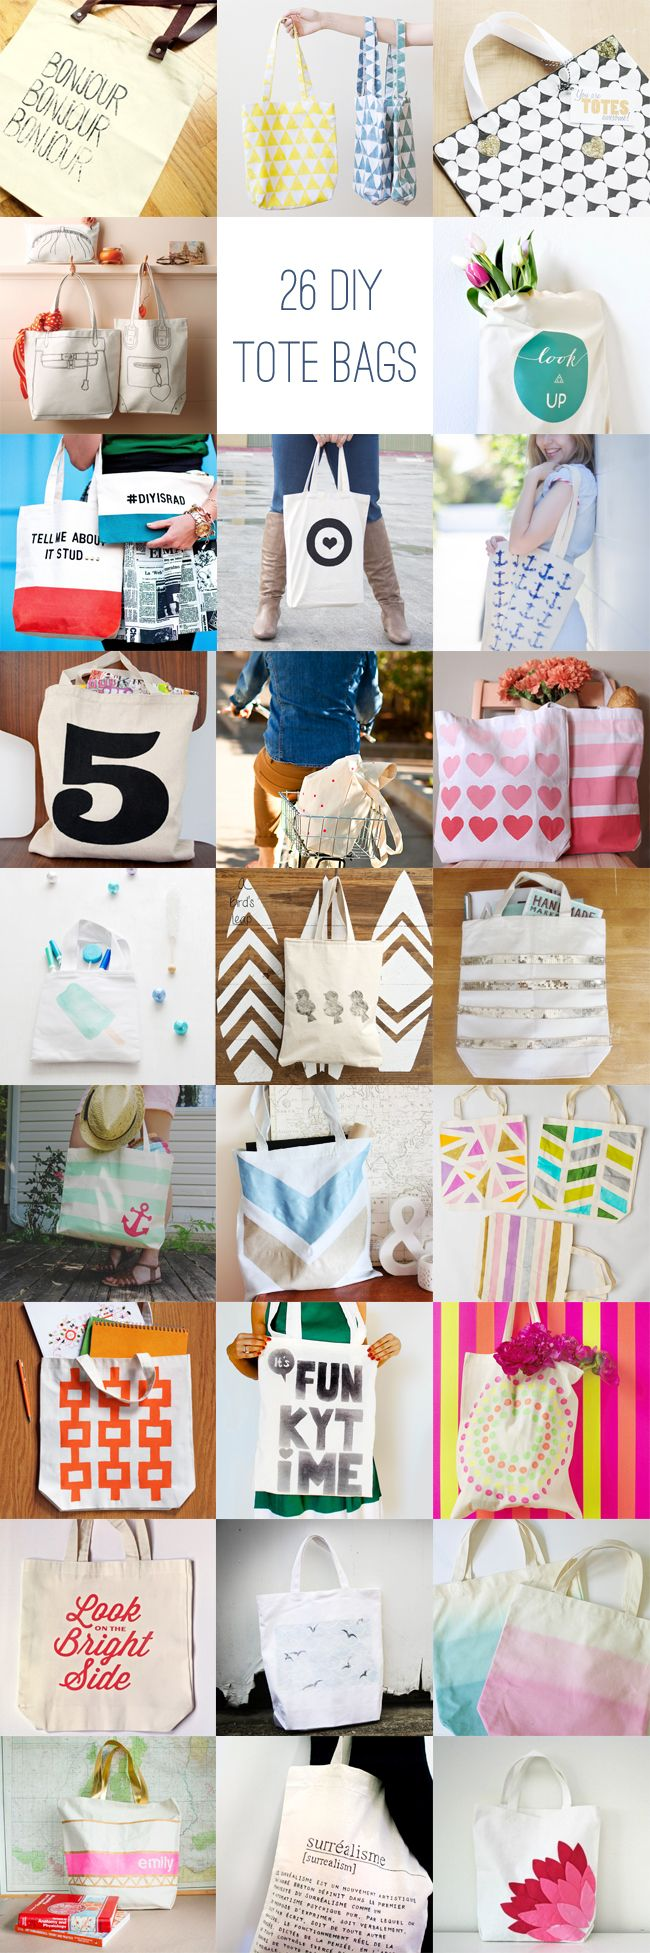 Hobby lobby craft bags - 26 Diy Tote Bag Ideas With Links To Tutorials This Blogger Recommends 1 99 Hobby Lobby